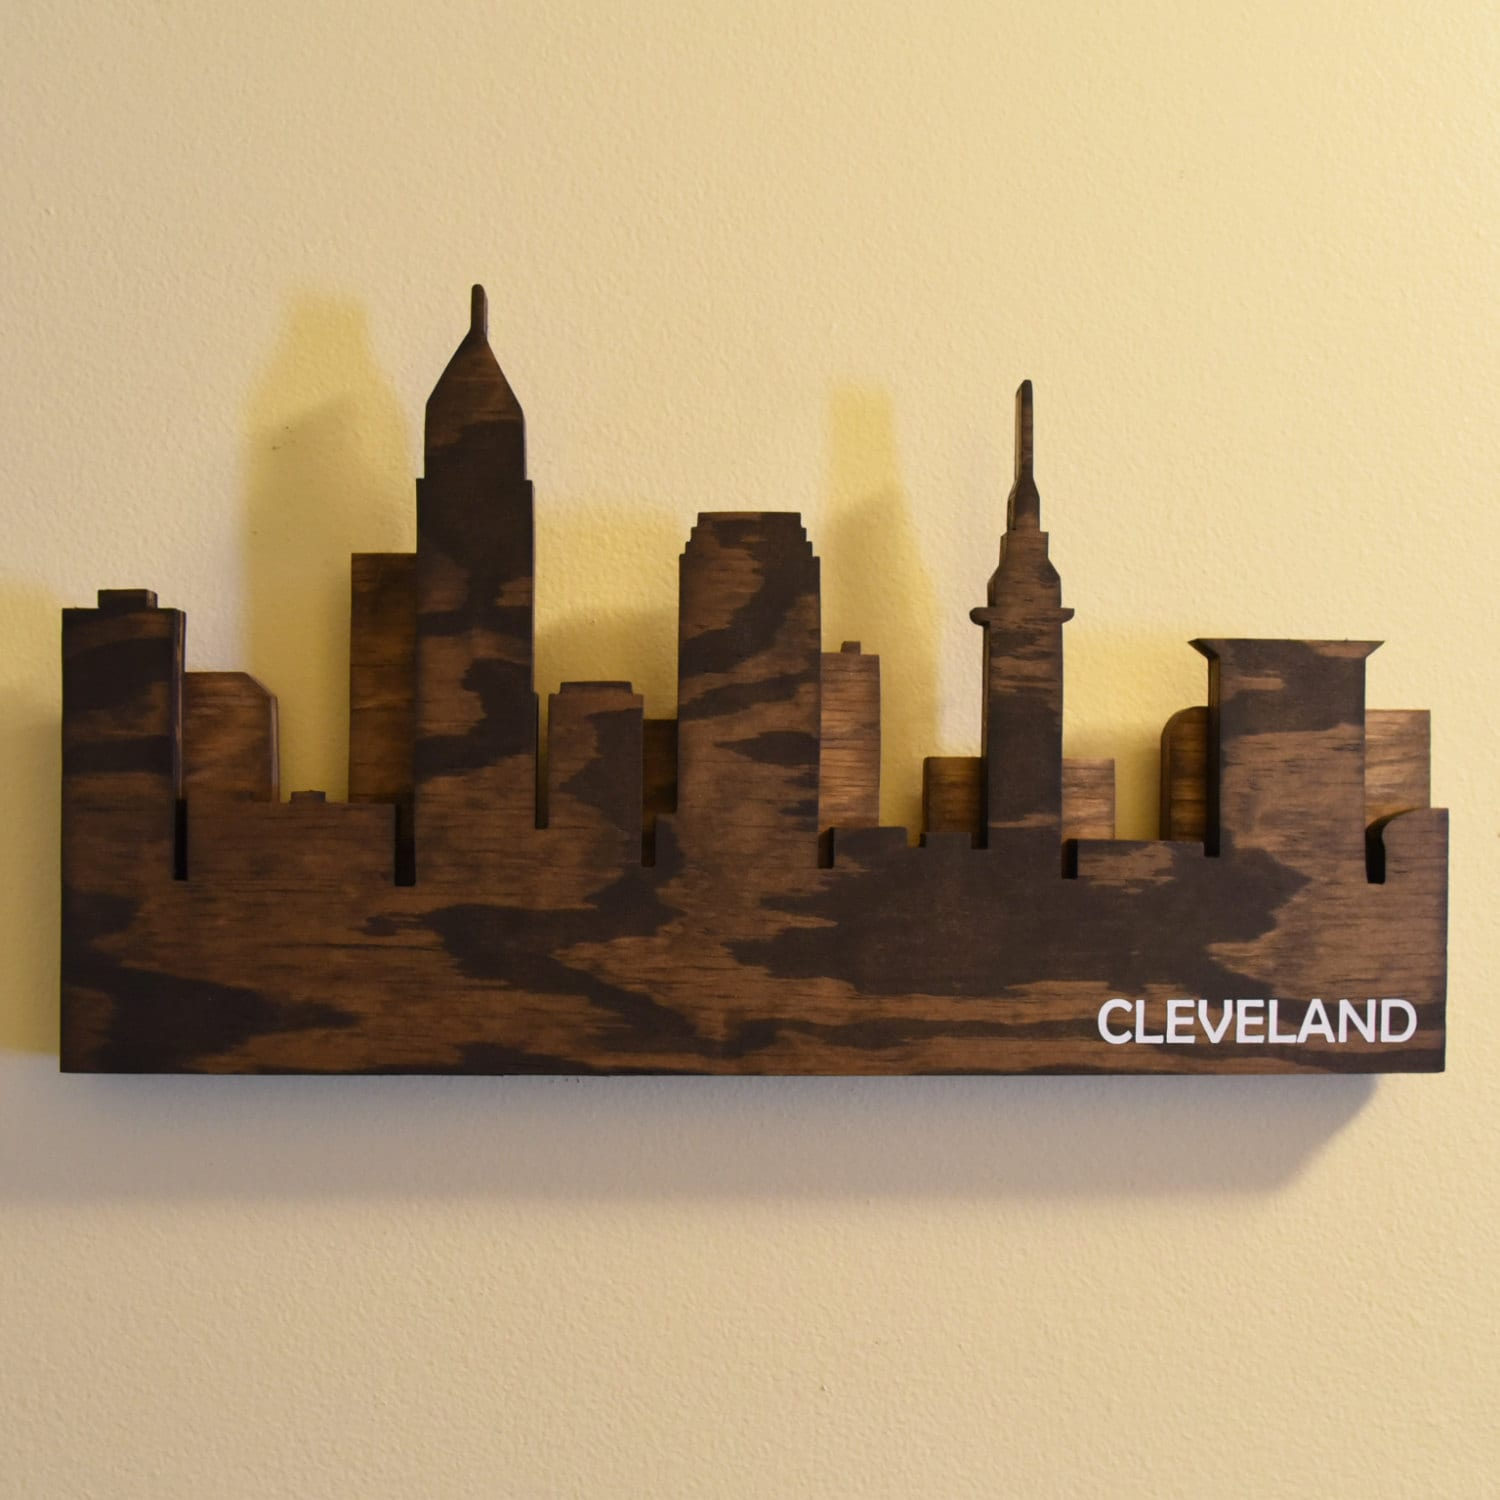 Cleveland Skyline Wall Art Handmade Wooden Cleveland Sign | Etsy